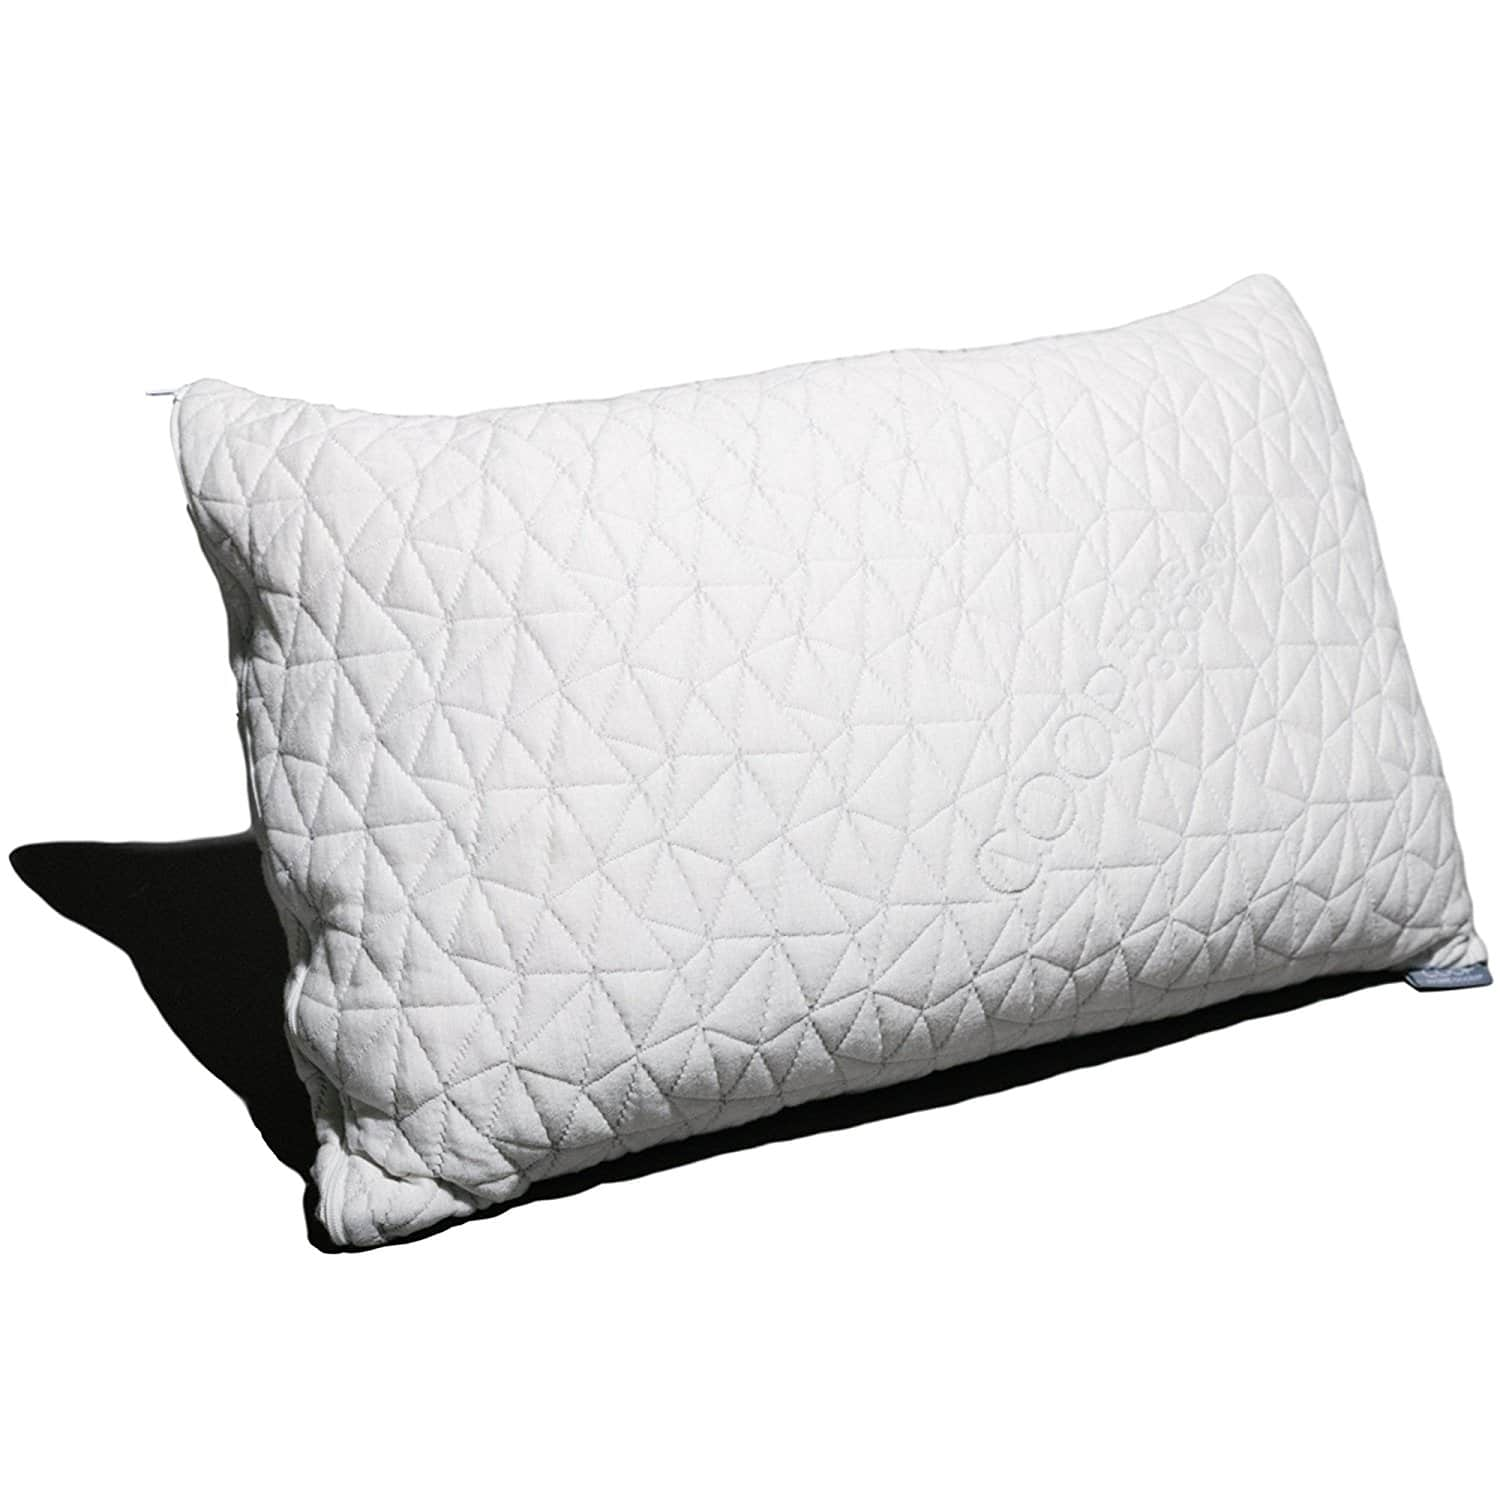 Adjustable Loft Shredded Memory Form Pillow [Queen] $38.99